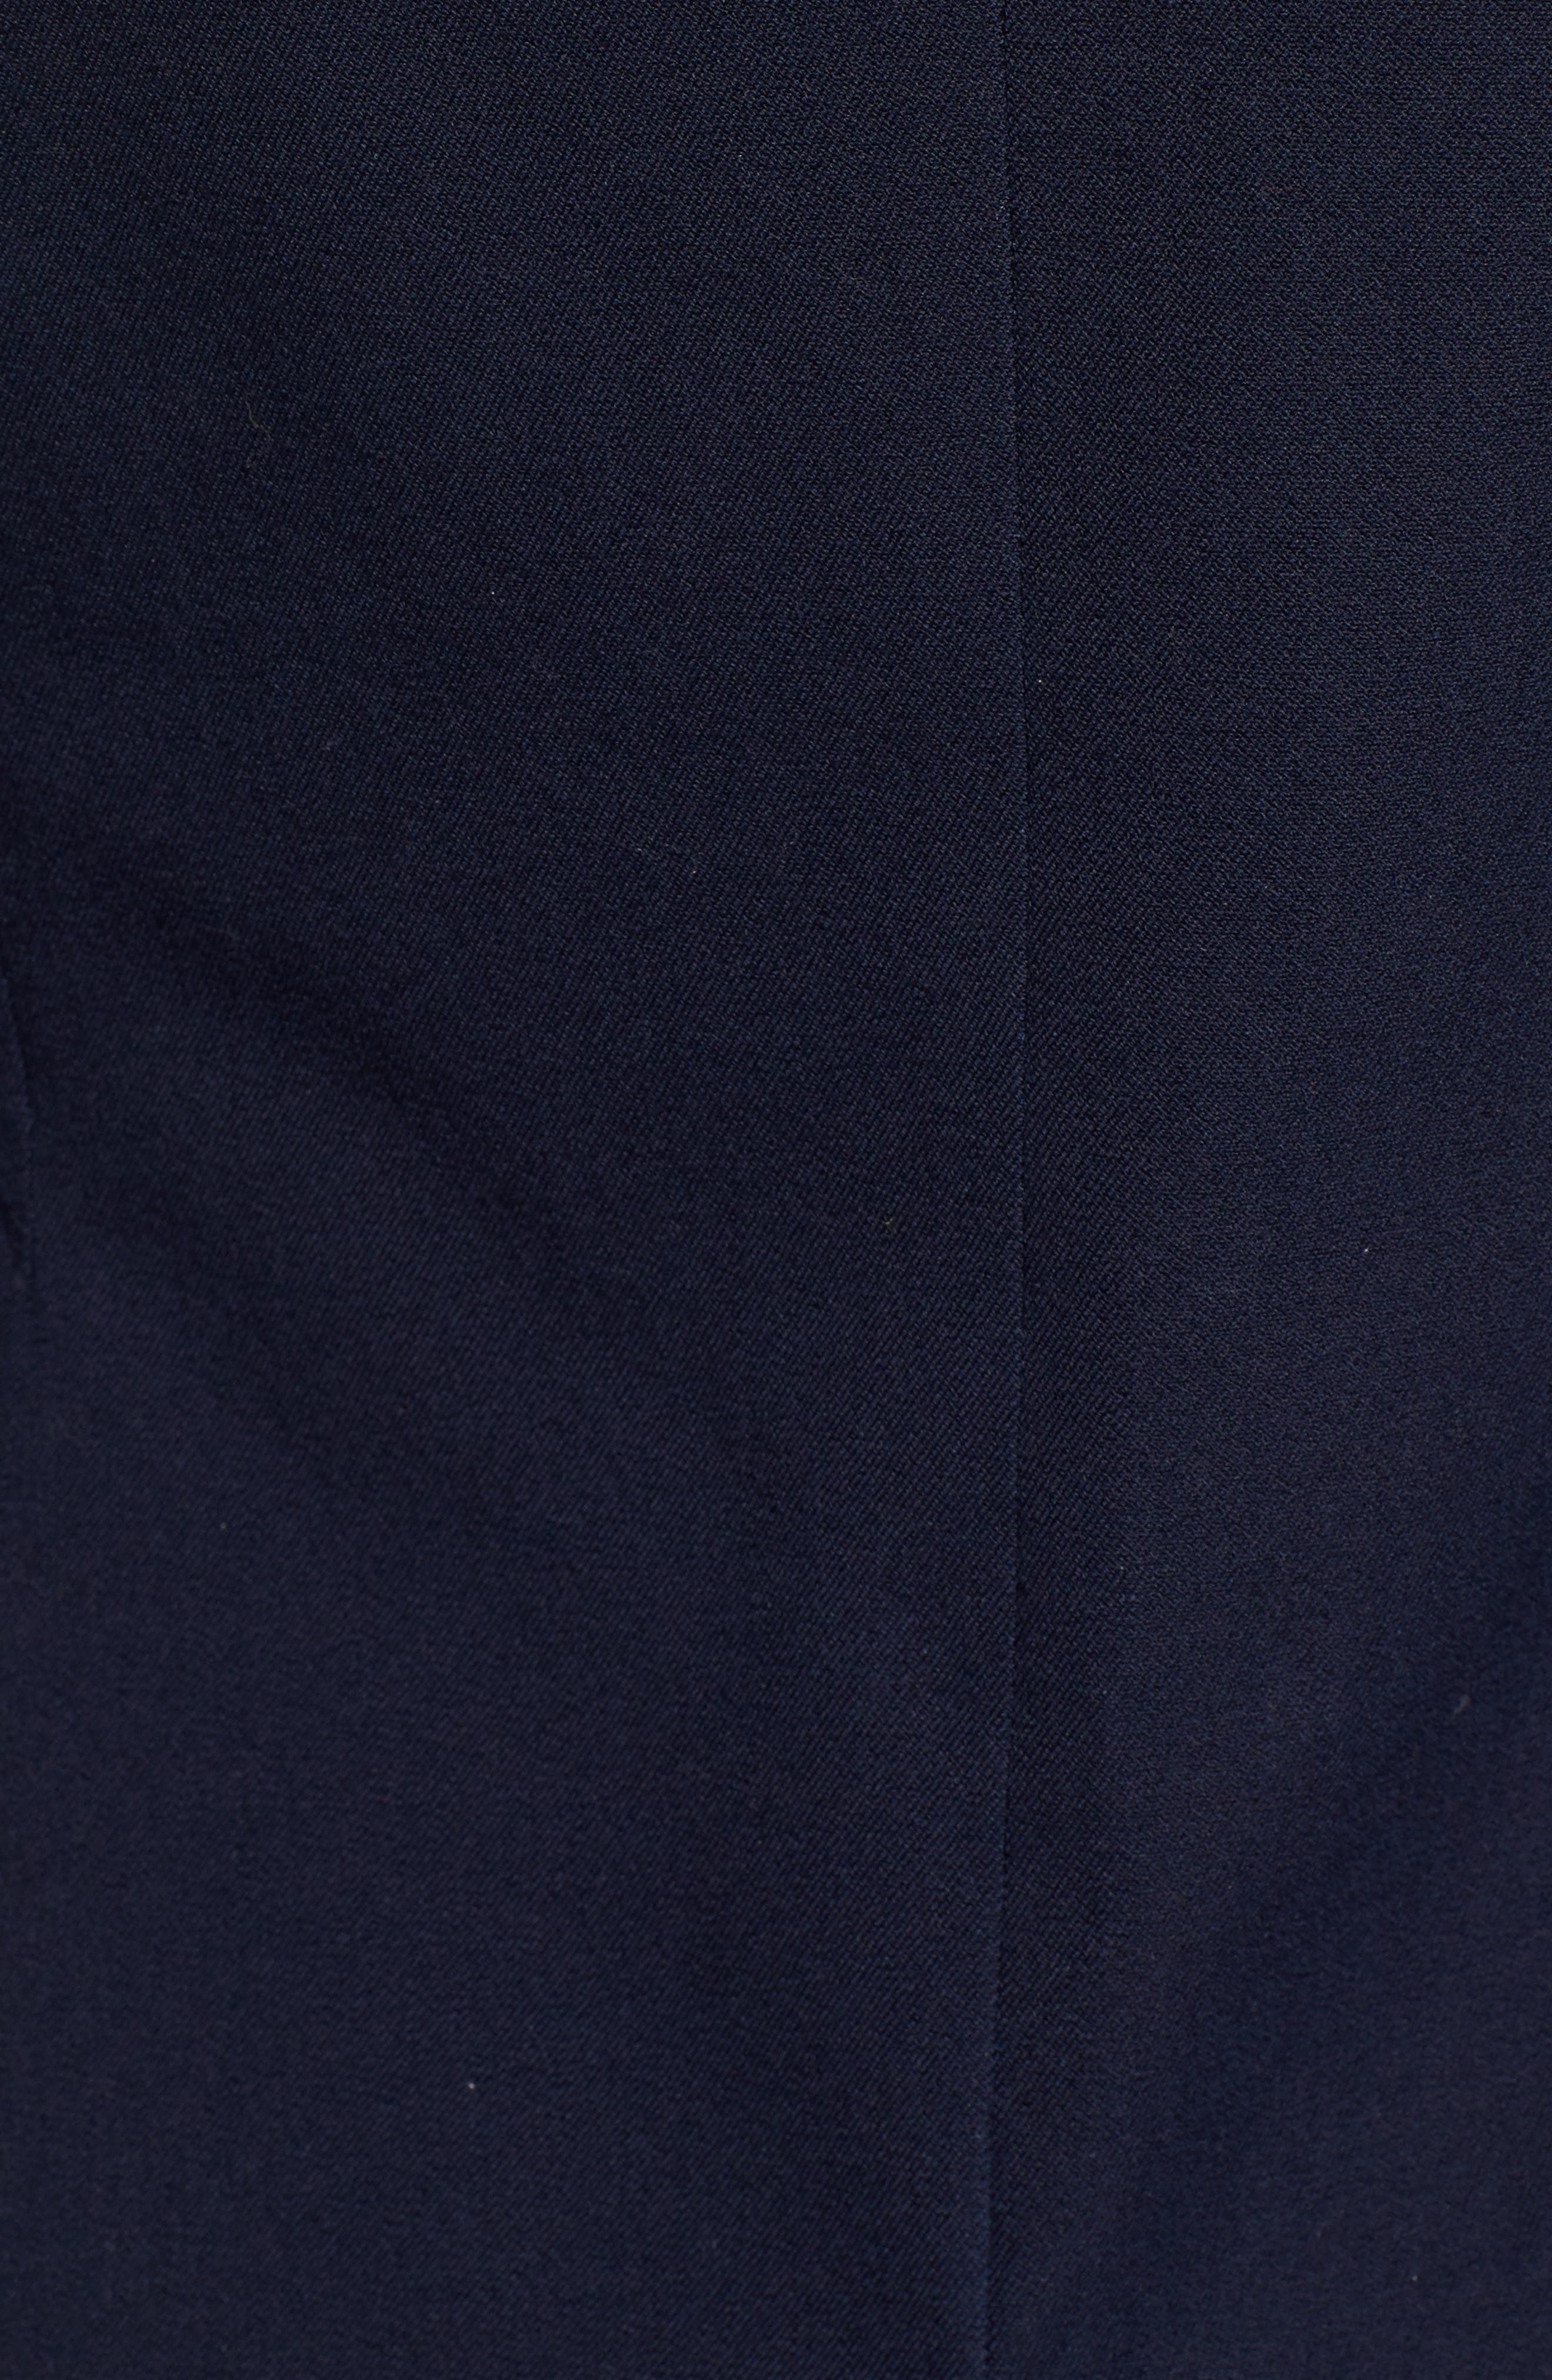 Stretch Cotton Twill Blazer,                             Alternate thumbnail 7, color,                             NAVY NIGHT